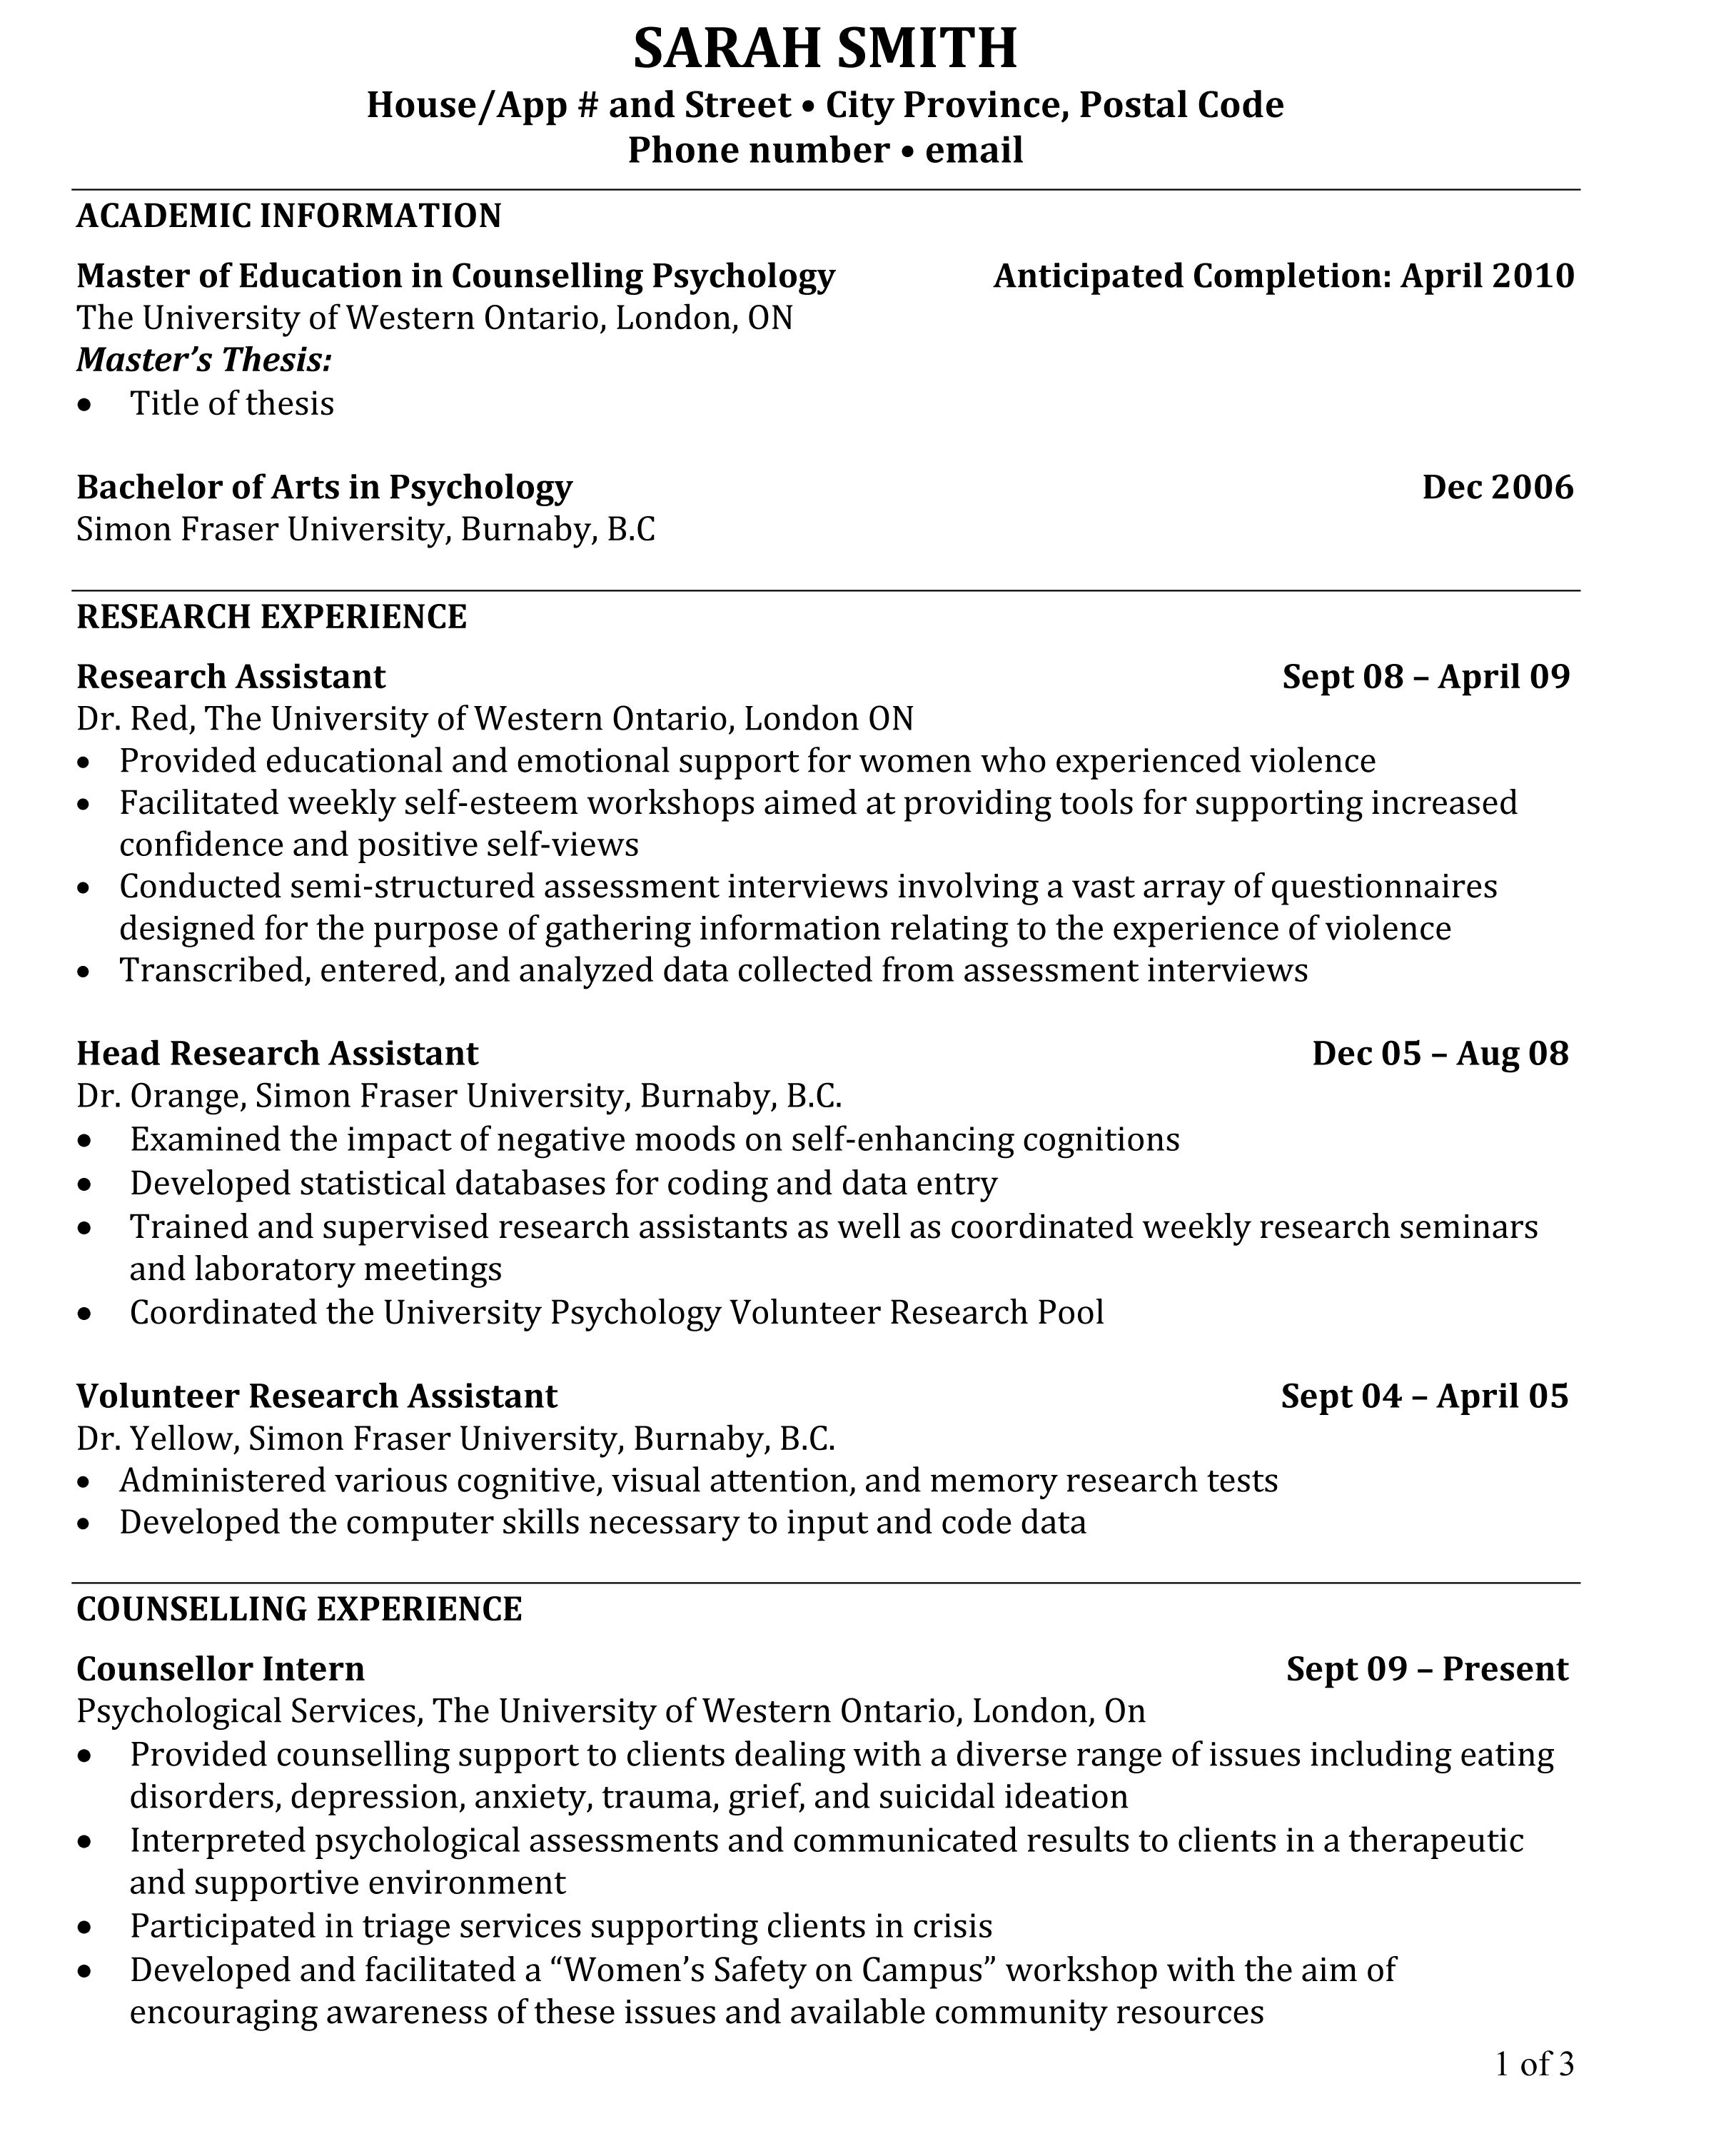 Academic Resume Format Pin By Sarah K On Grad School Resume Templates Academic Cv